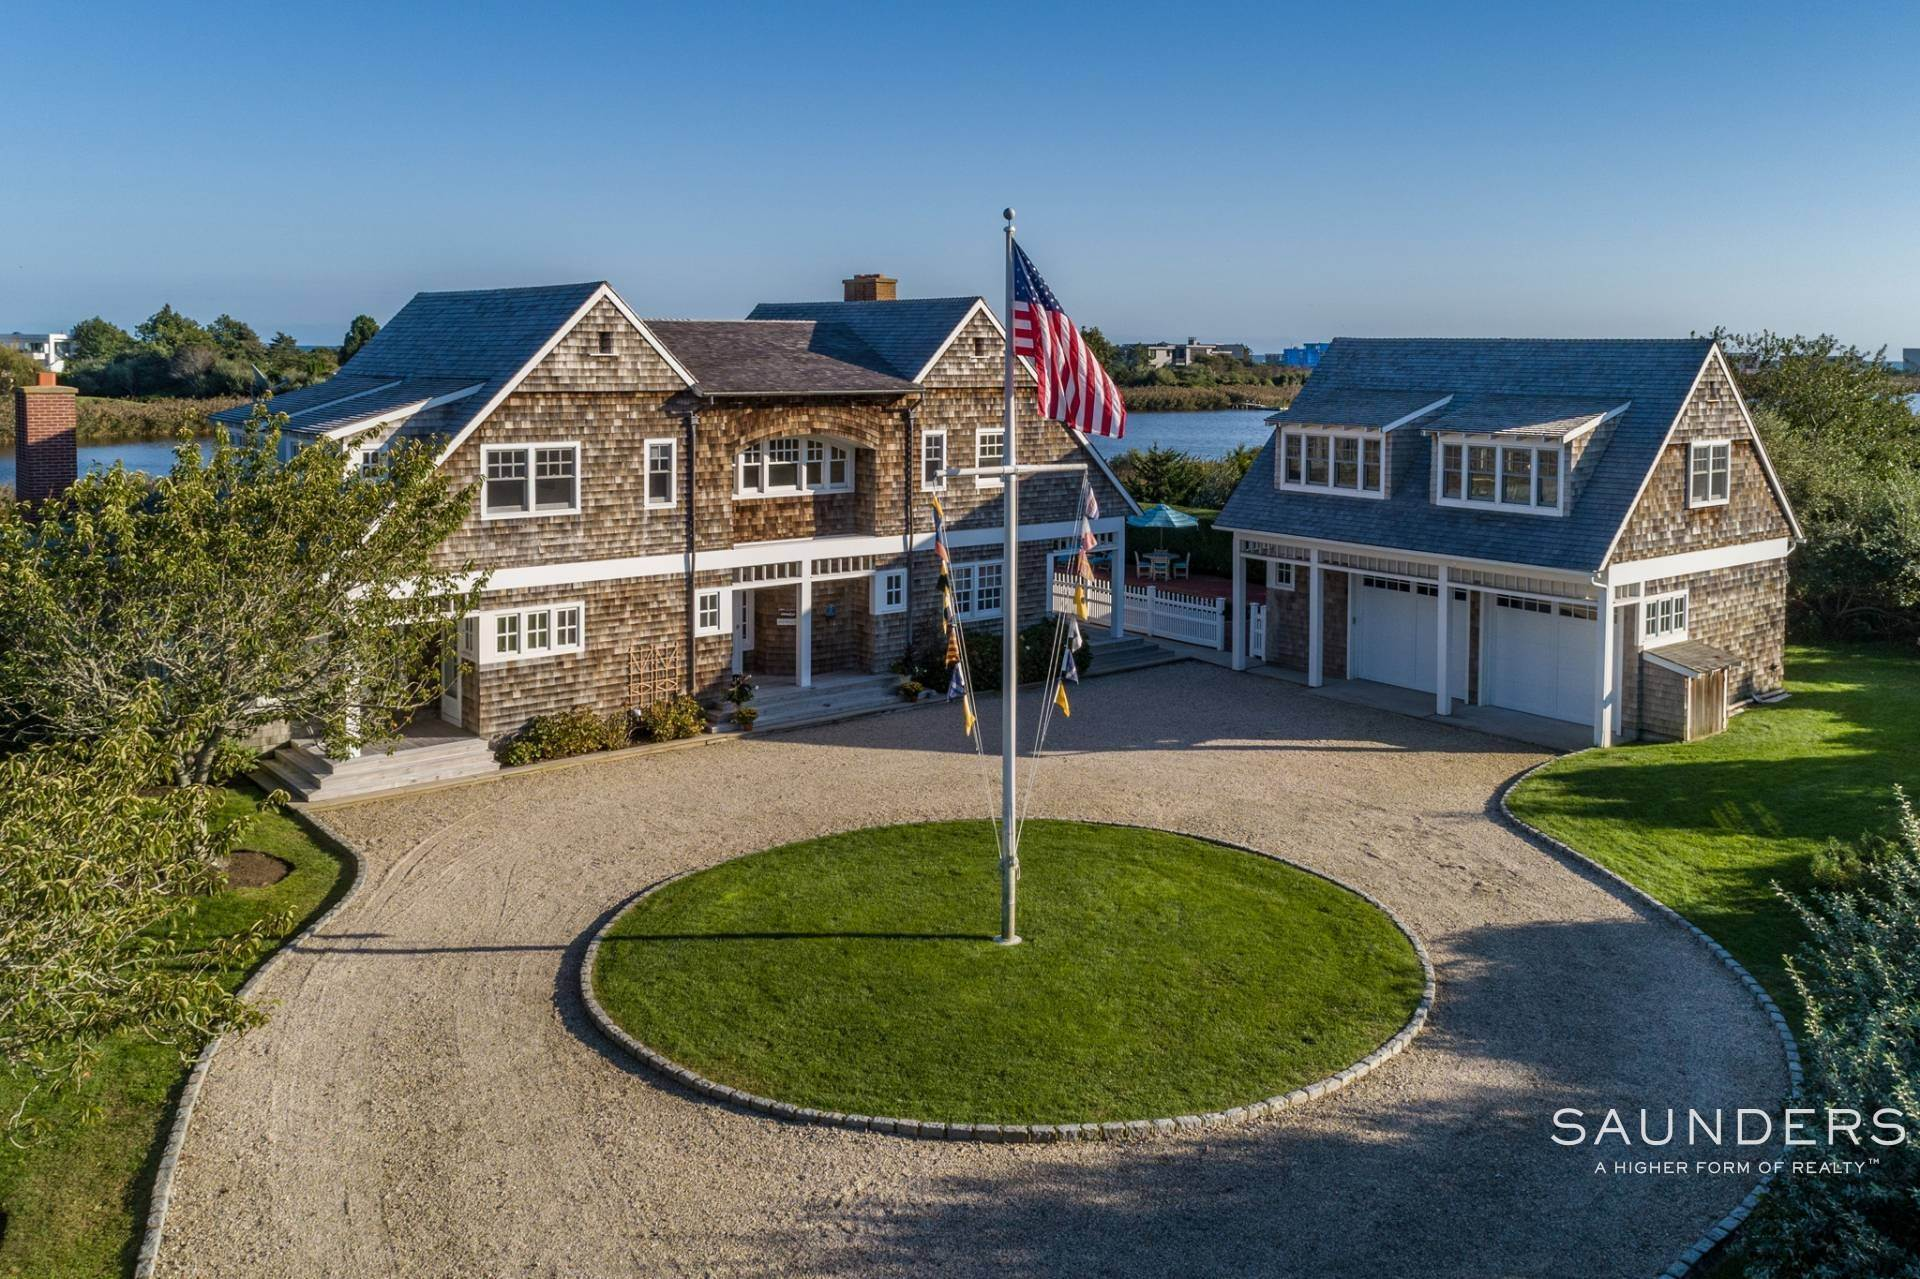 2. Single Family Homes for Sale at Bridgehampton South Waterfront With Dock & Ocean View 87 Rose Way, Bridgehampton, Southampton Town, NY 11932